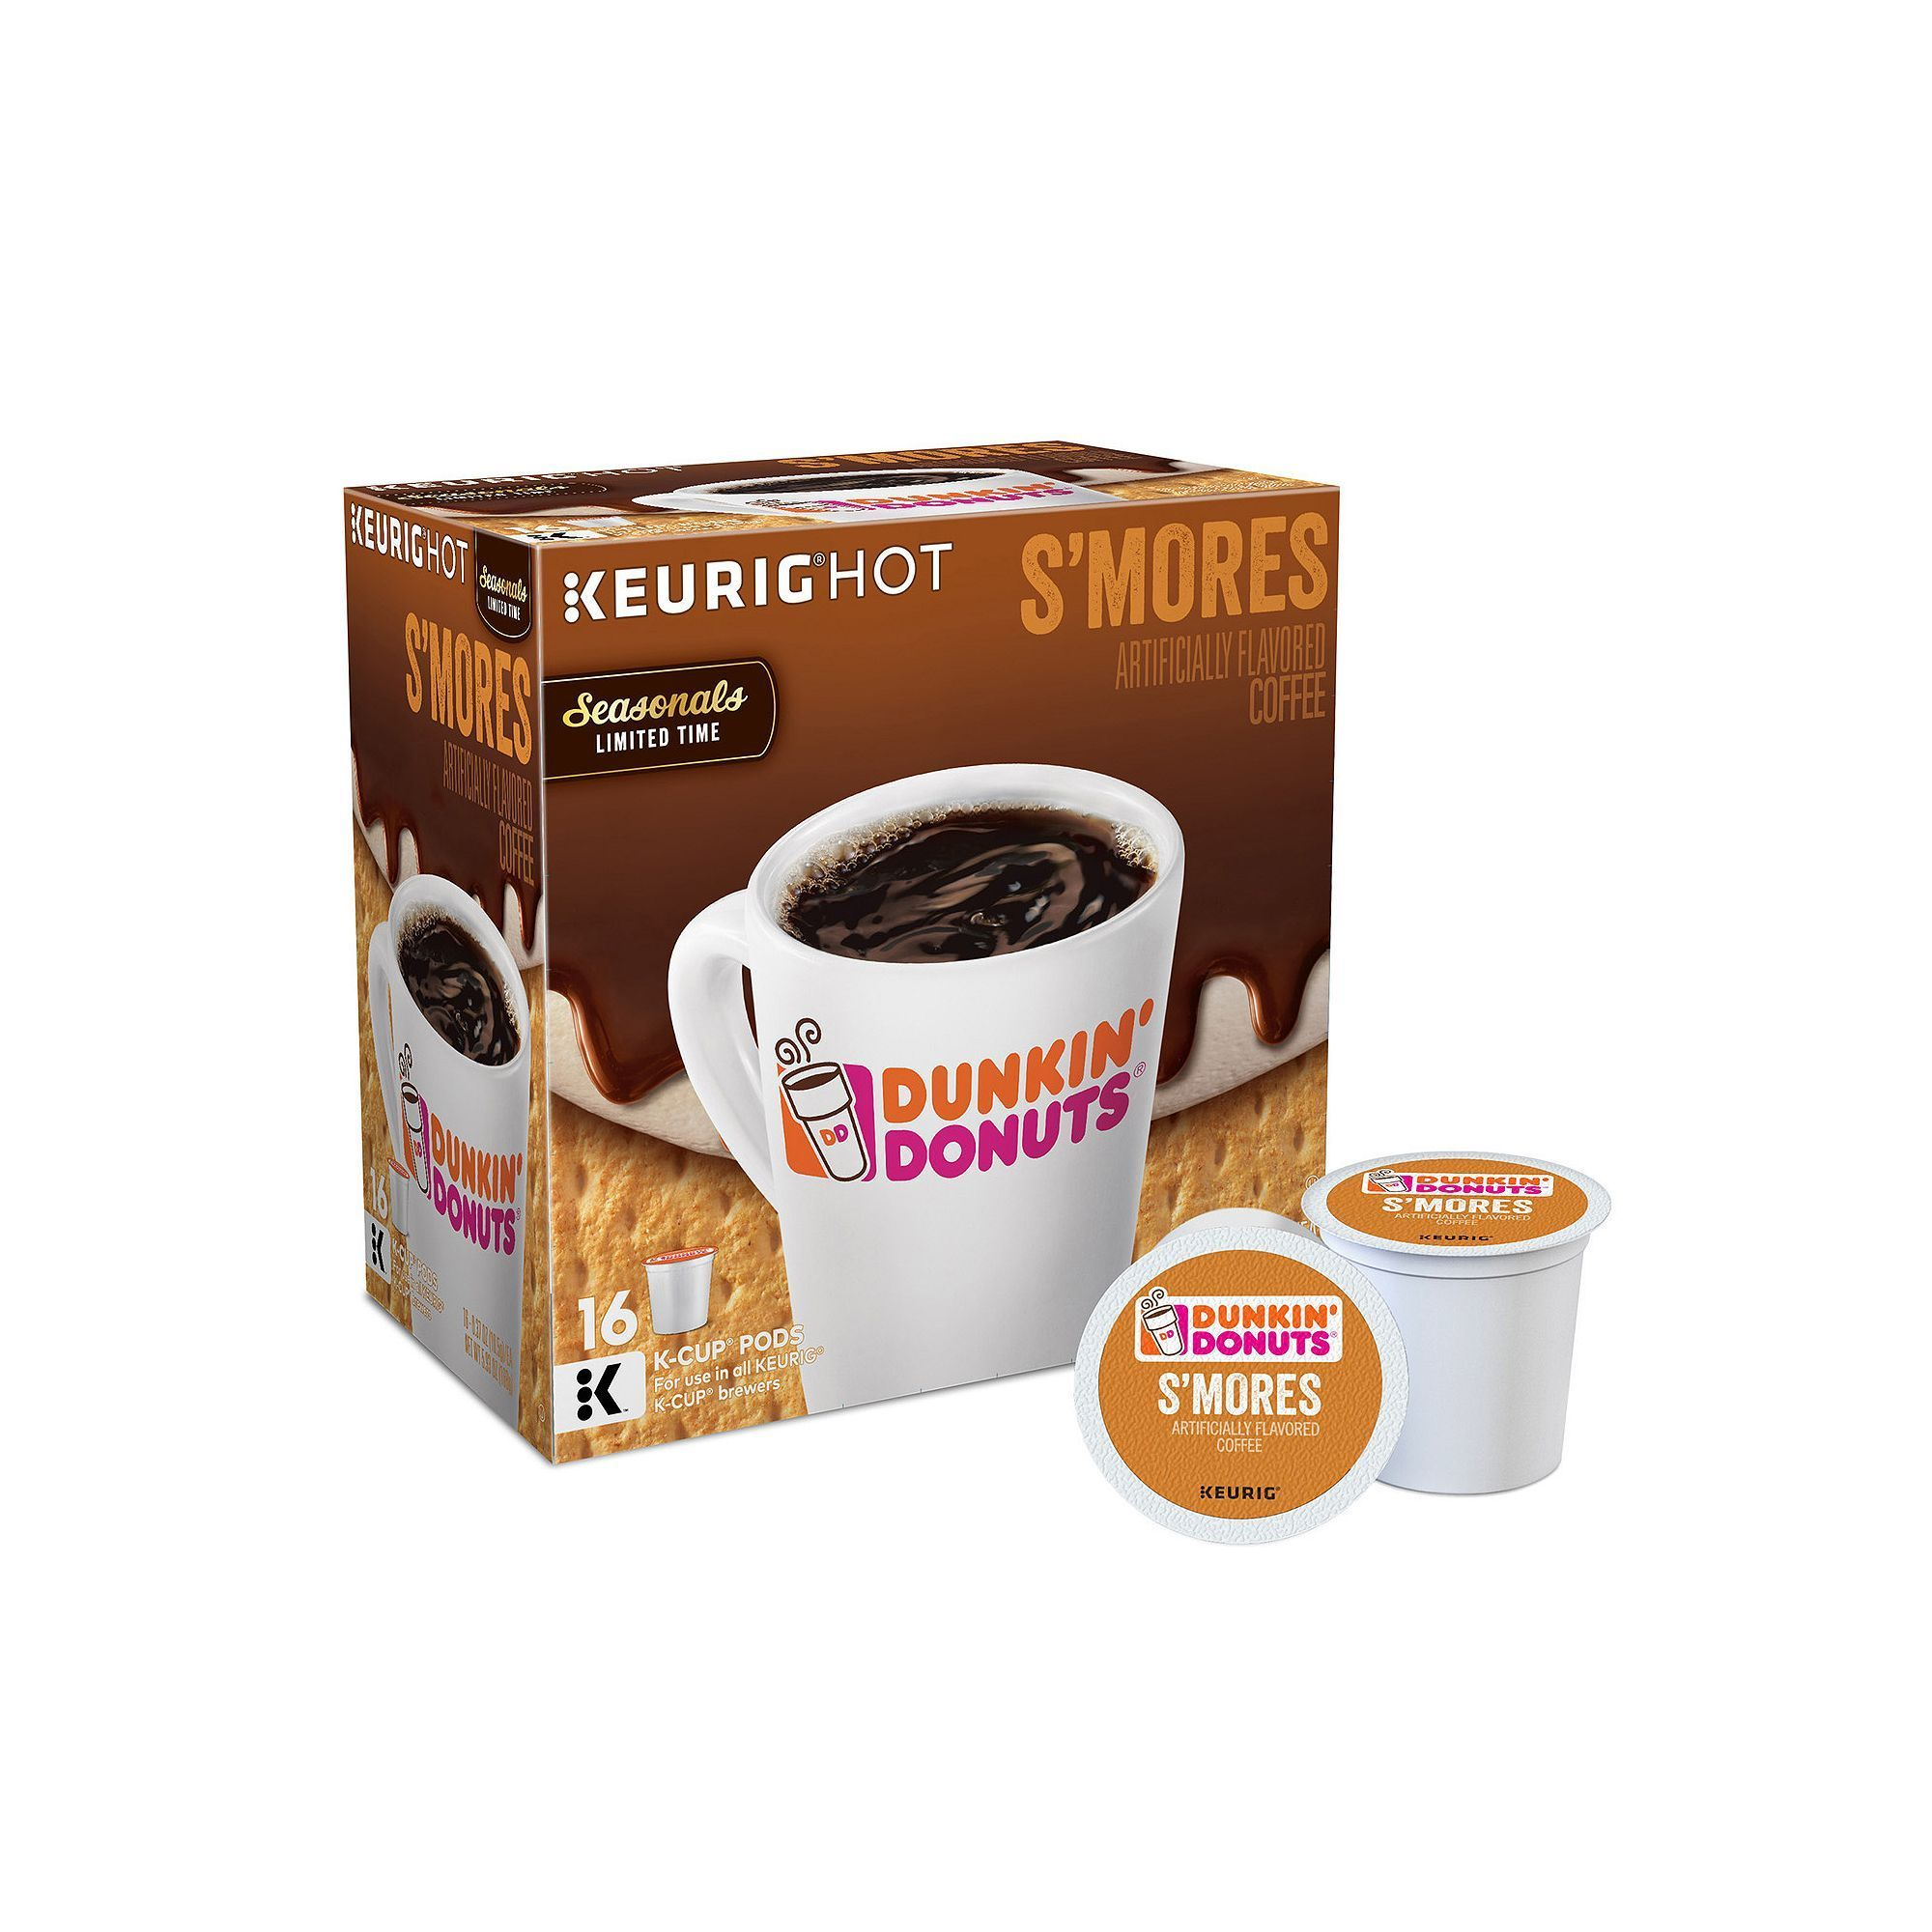 458a7dffc3baf Keurig® K-Cup® Pod Dunkin' Donuts S'mores Coffee - 16-pk   Products ...